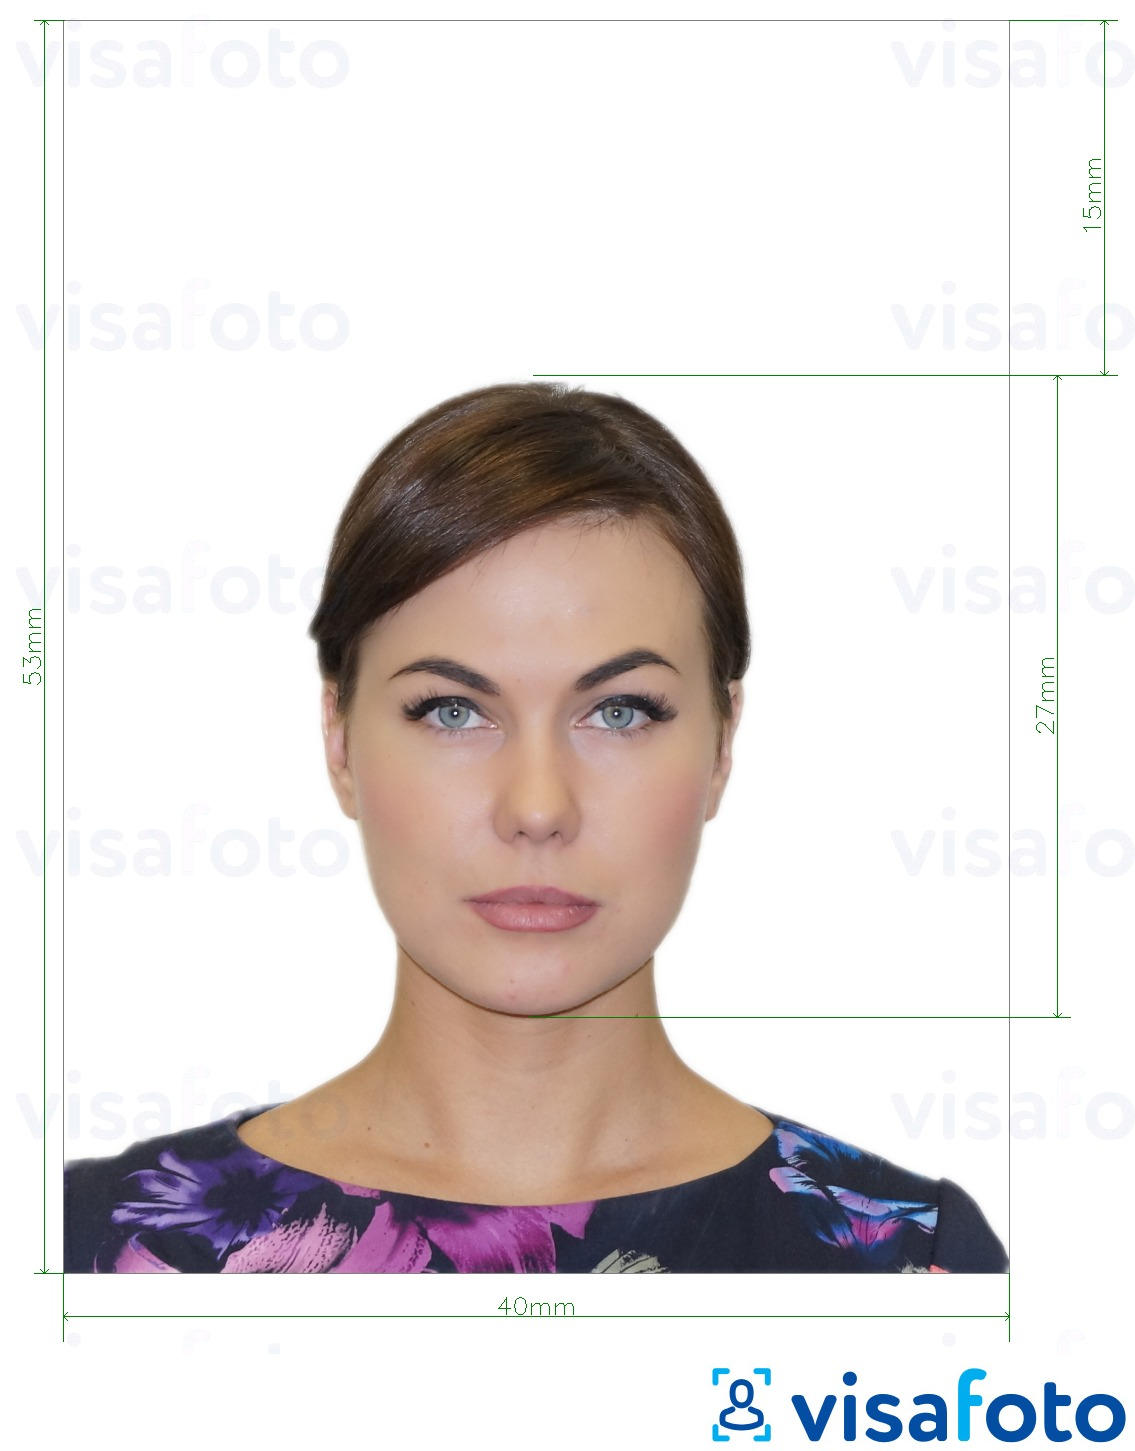 Example of photo for Spain Passport 40x53 mm with exact size specification